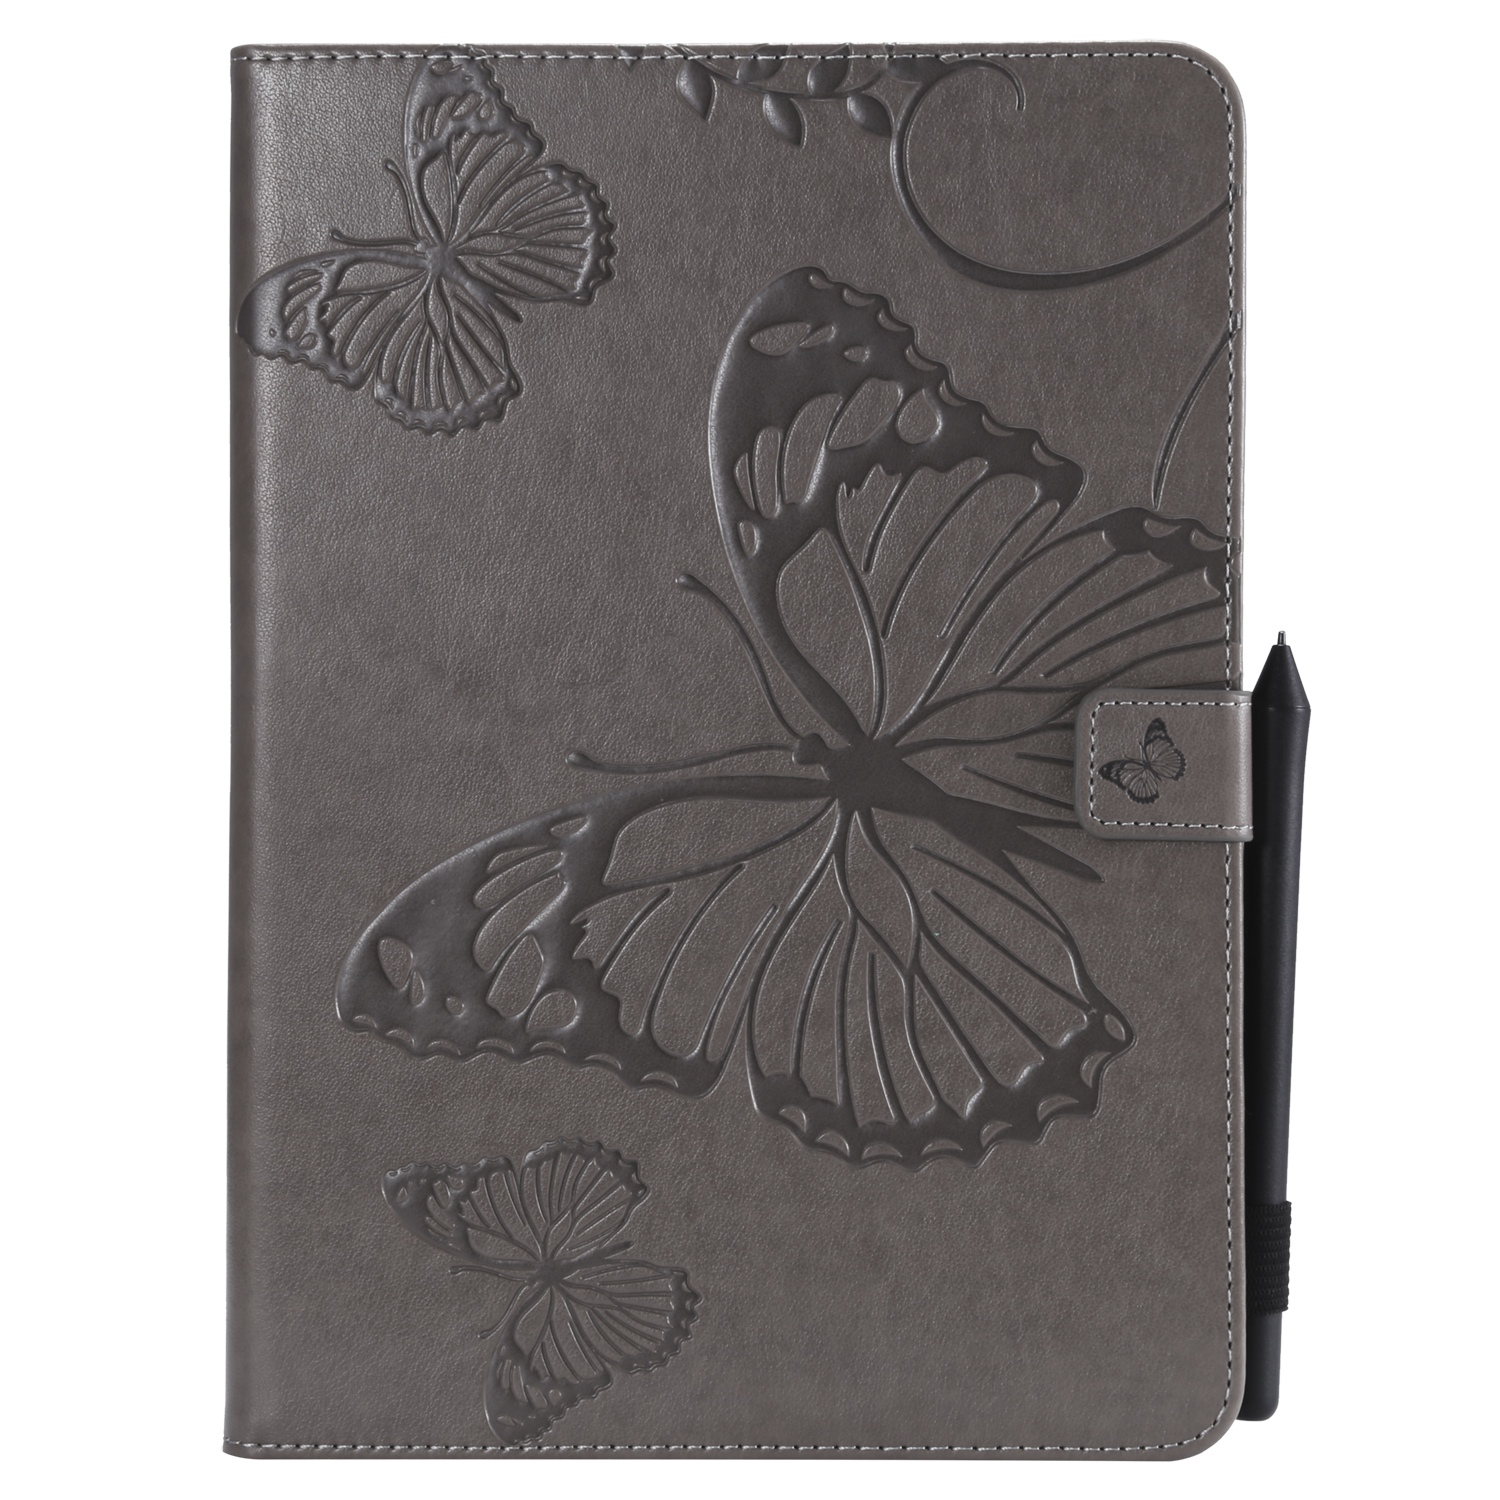 For iPad 5/6/air1/air2 9.7 Fashion Butterfly Embossed PU Leather Magnetic Closure Stand Case Auto Wake/Sleep Cover with Pen Slot gray